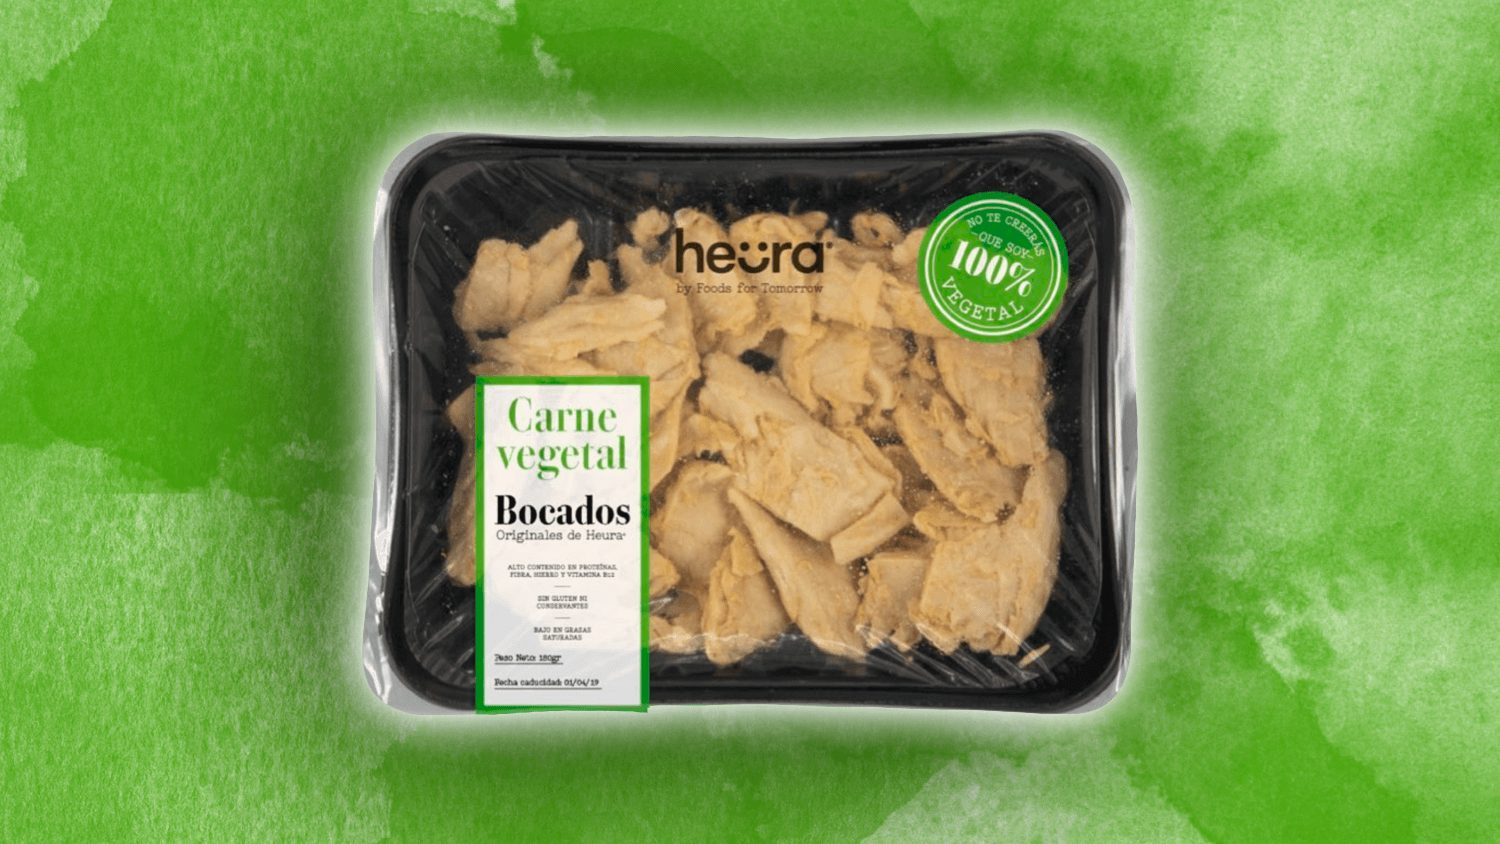 Vegan Spanish Meat Producer Expanding to 5,000 Locations